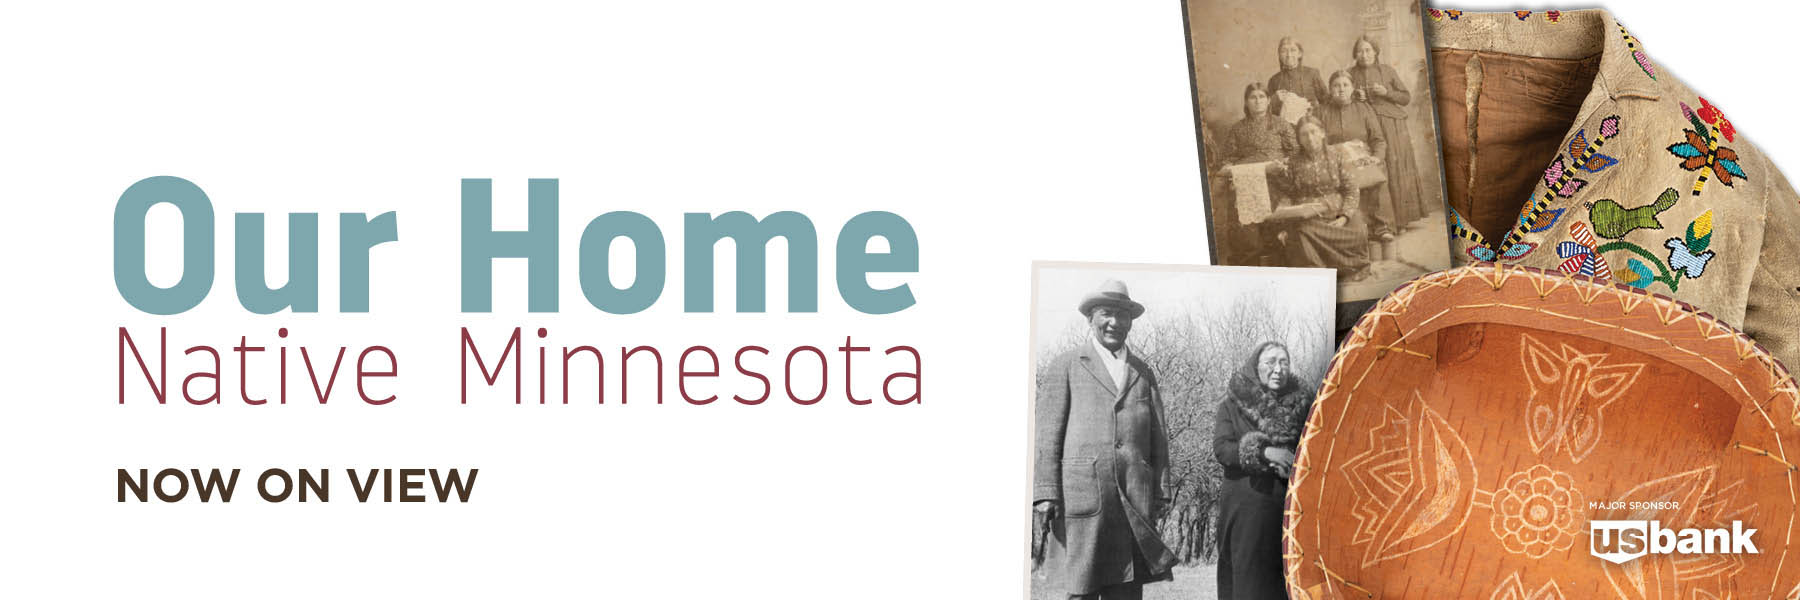 Our Home Native Minnesota now on view.